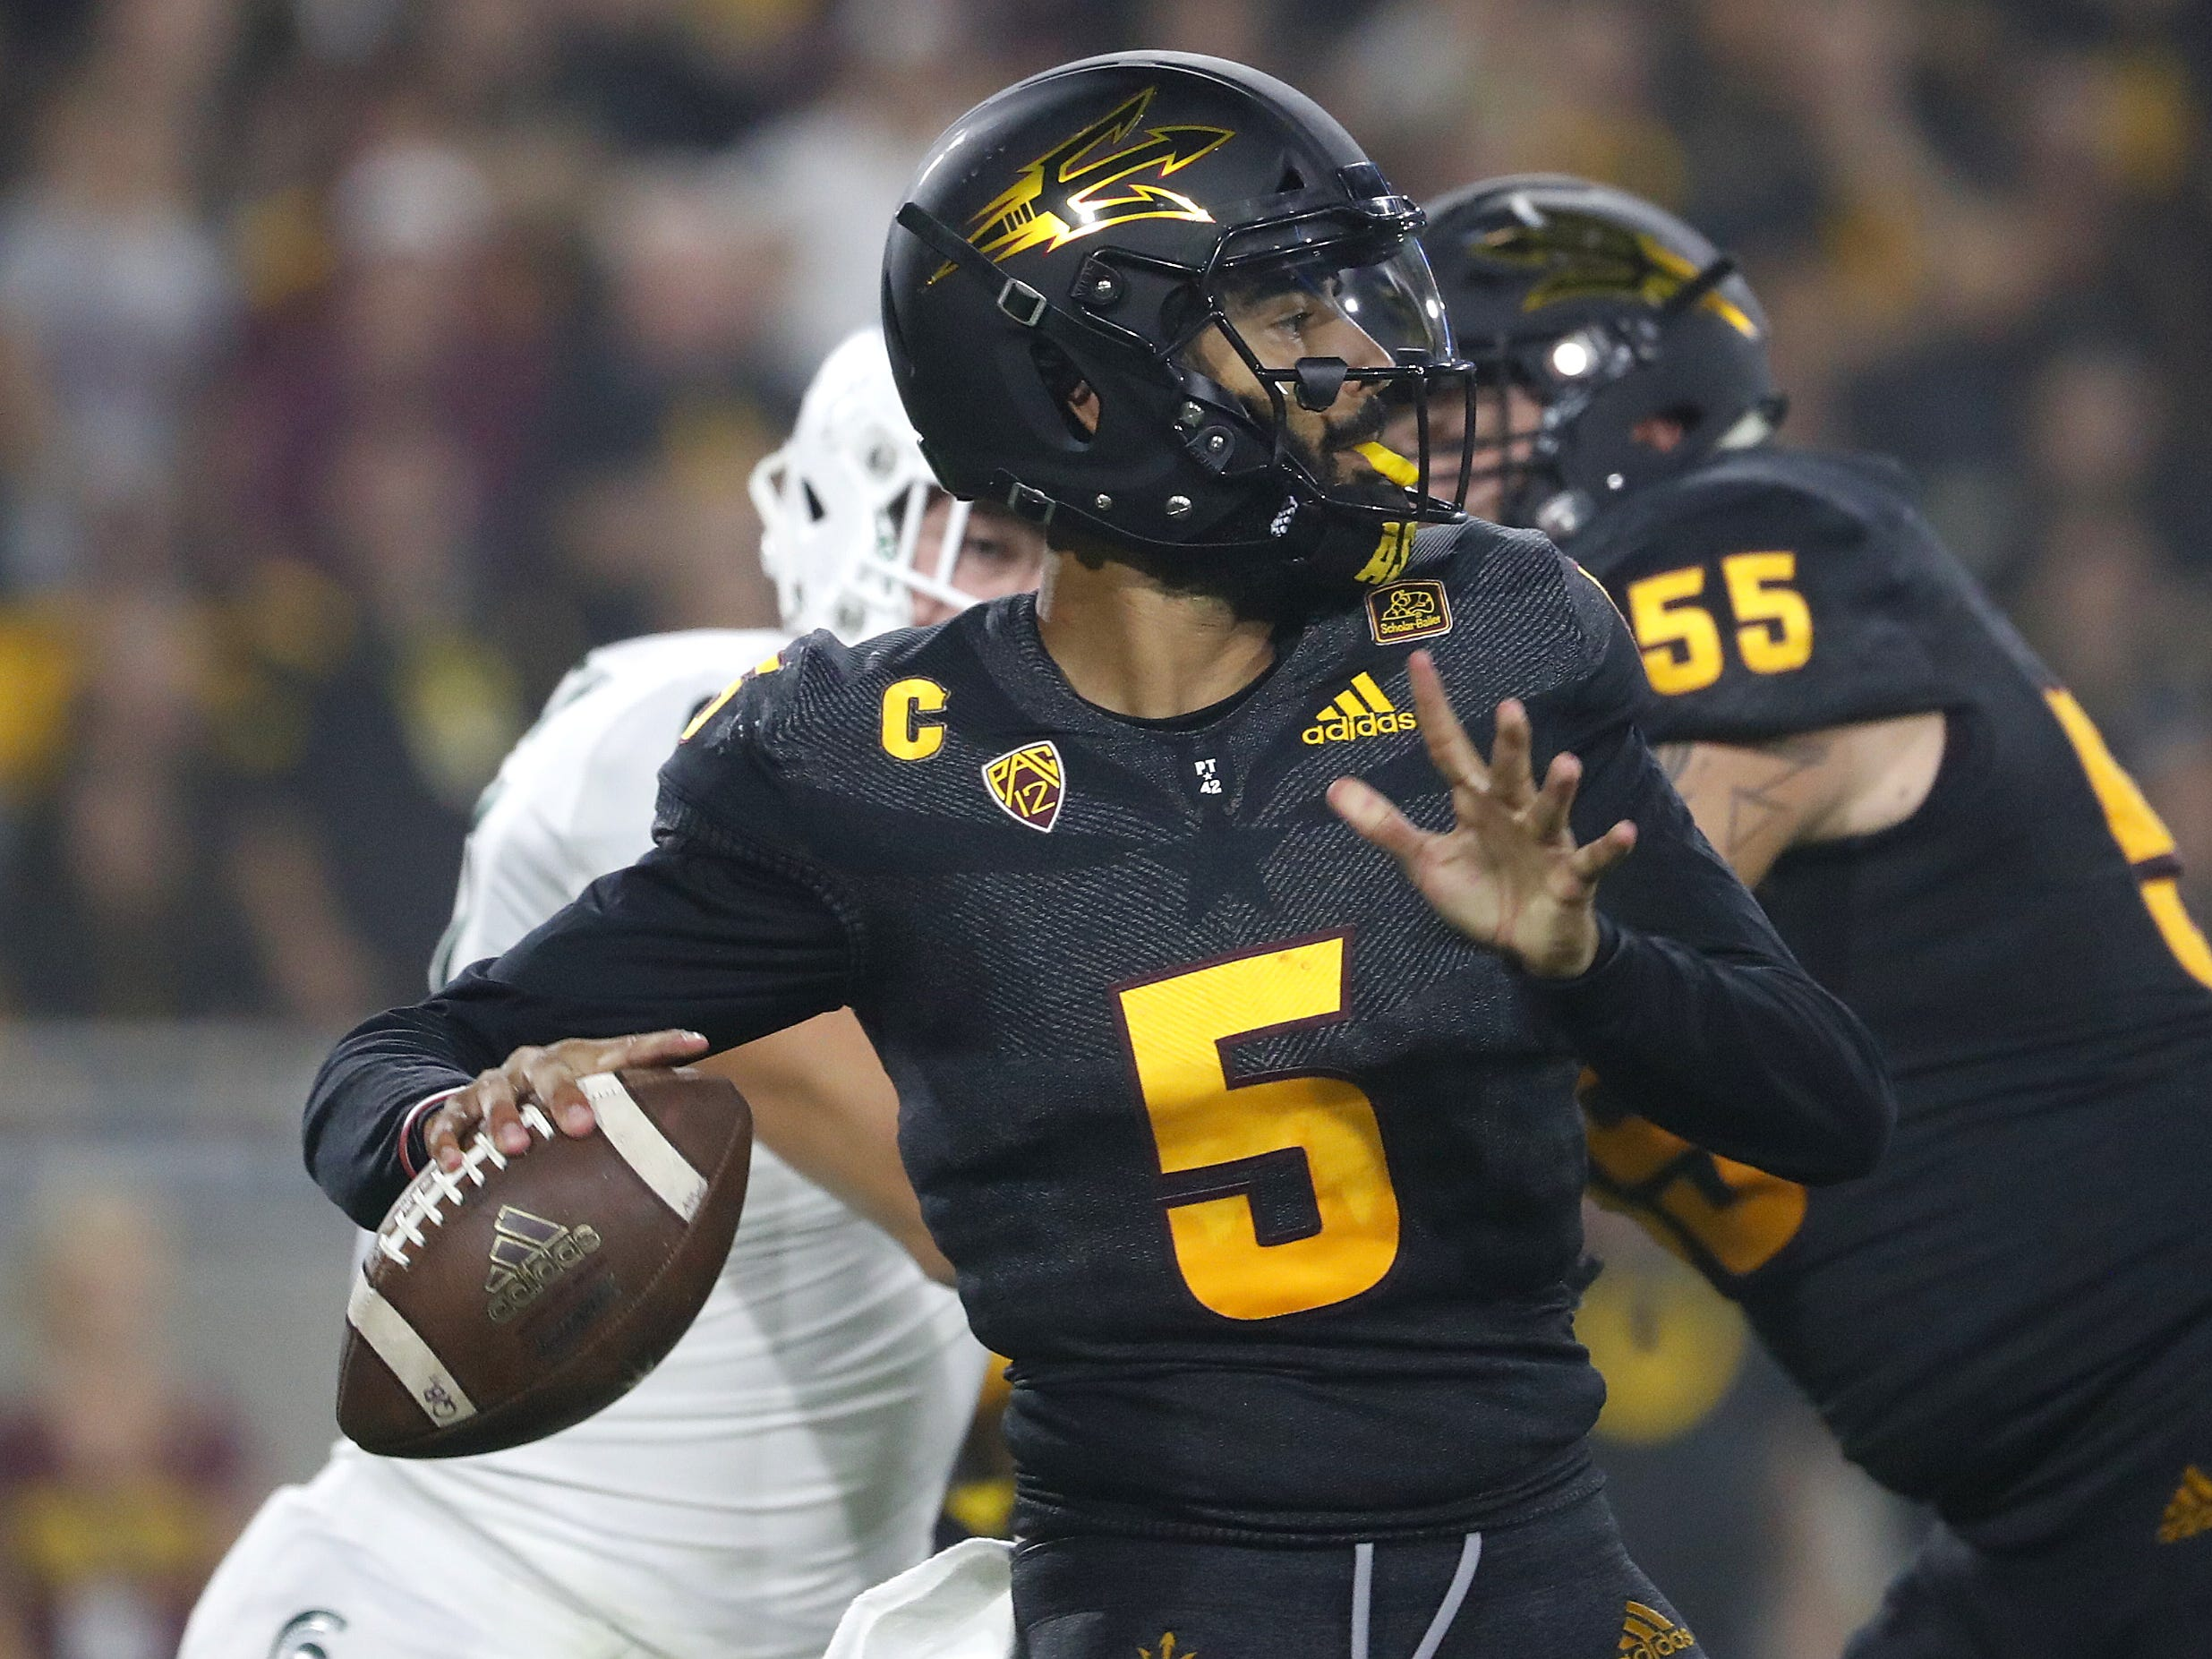 Arizona State Sun Devils quarterback Manny Wilkins (5) throws a pass under pressure from Michigan State's Justice Alexander (97) during the second quarter at Sun Devil Stadium in Tempe, Ariz. on Sept. 8, 2018.